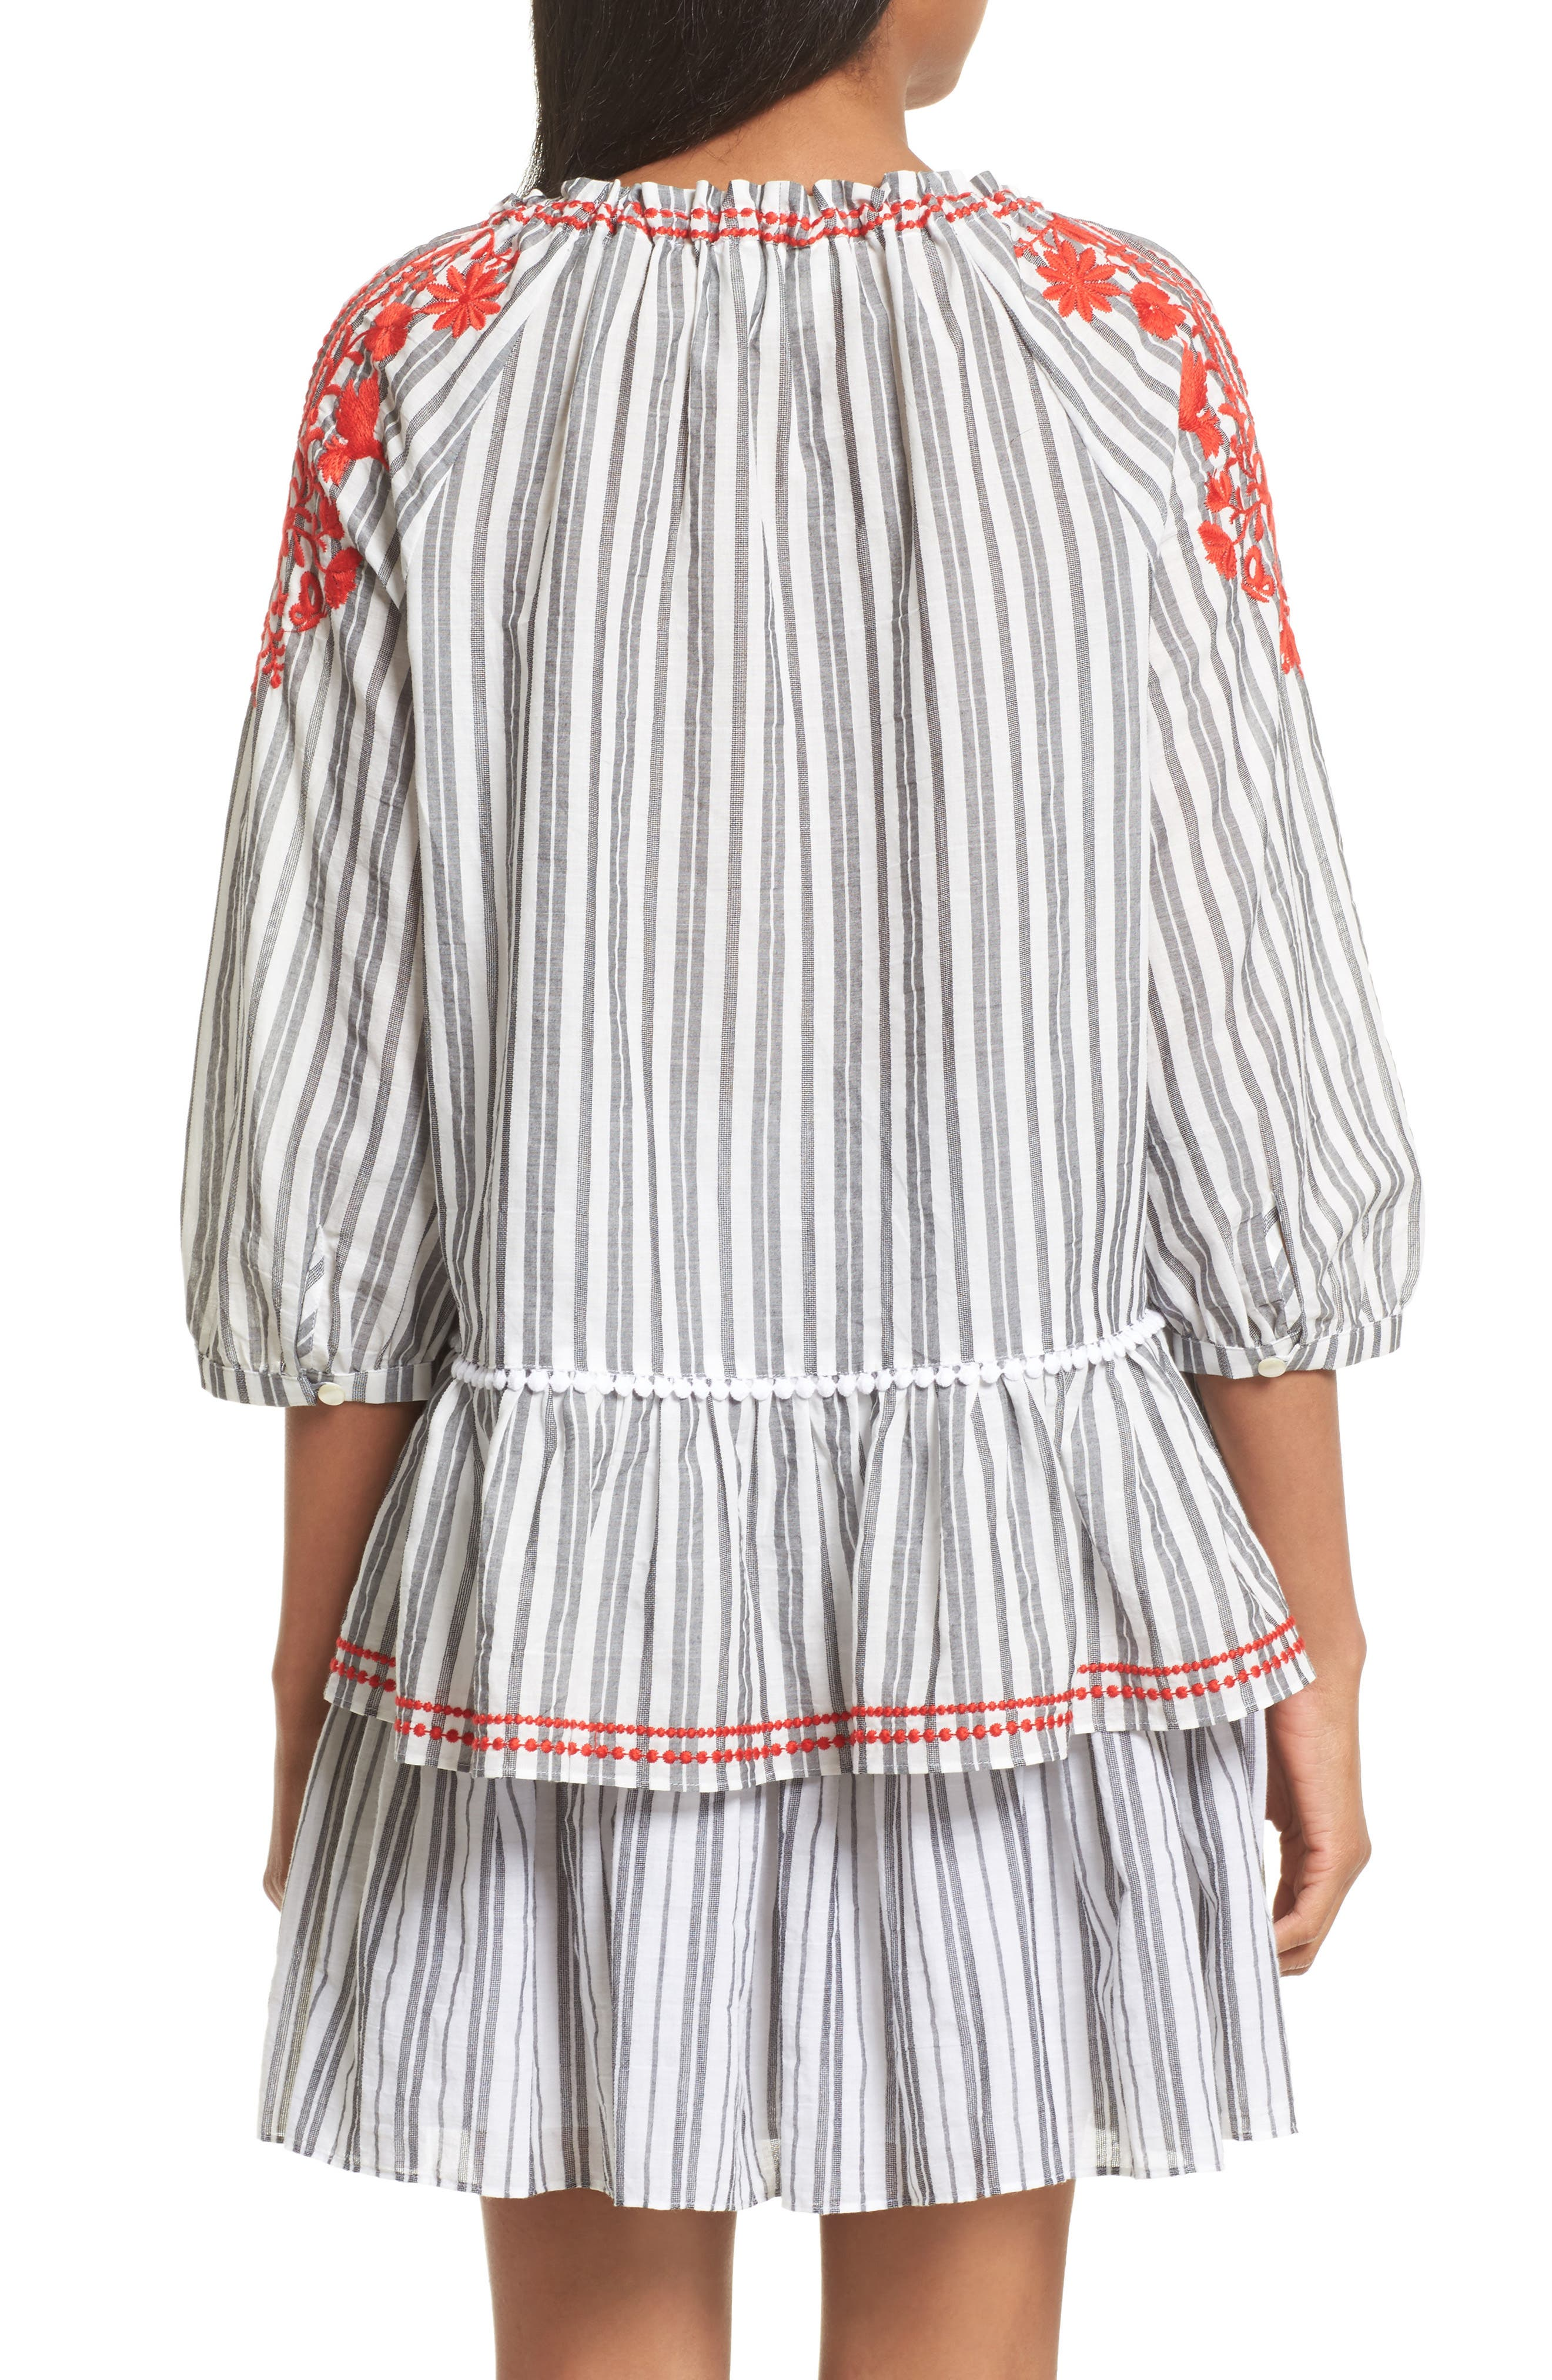 embroidered peasant top,                             Alternate thumbnail 3, color,                             Fresh White/ Black